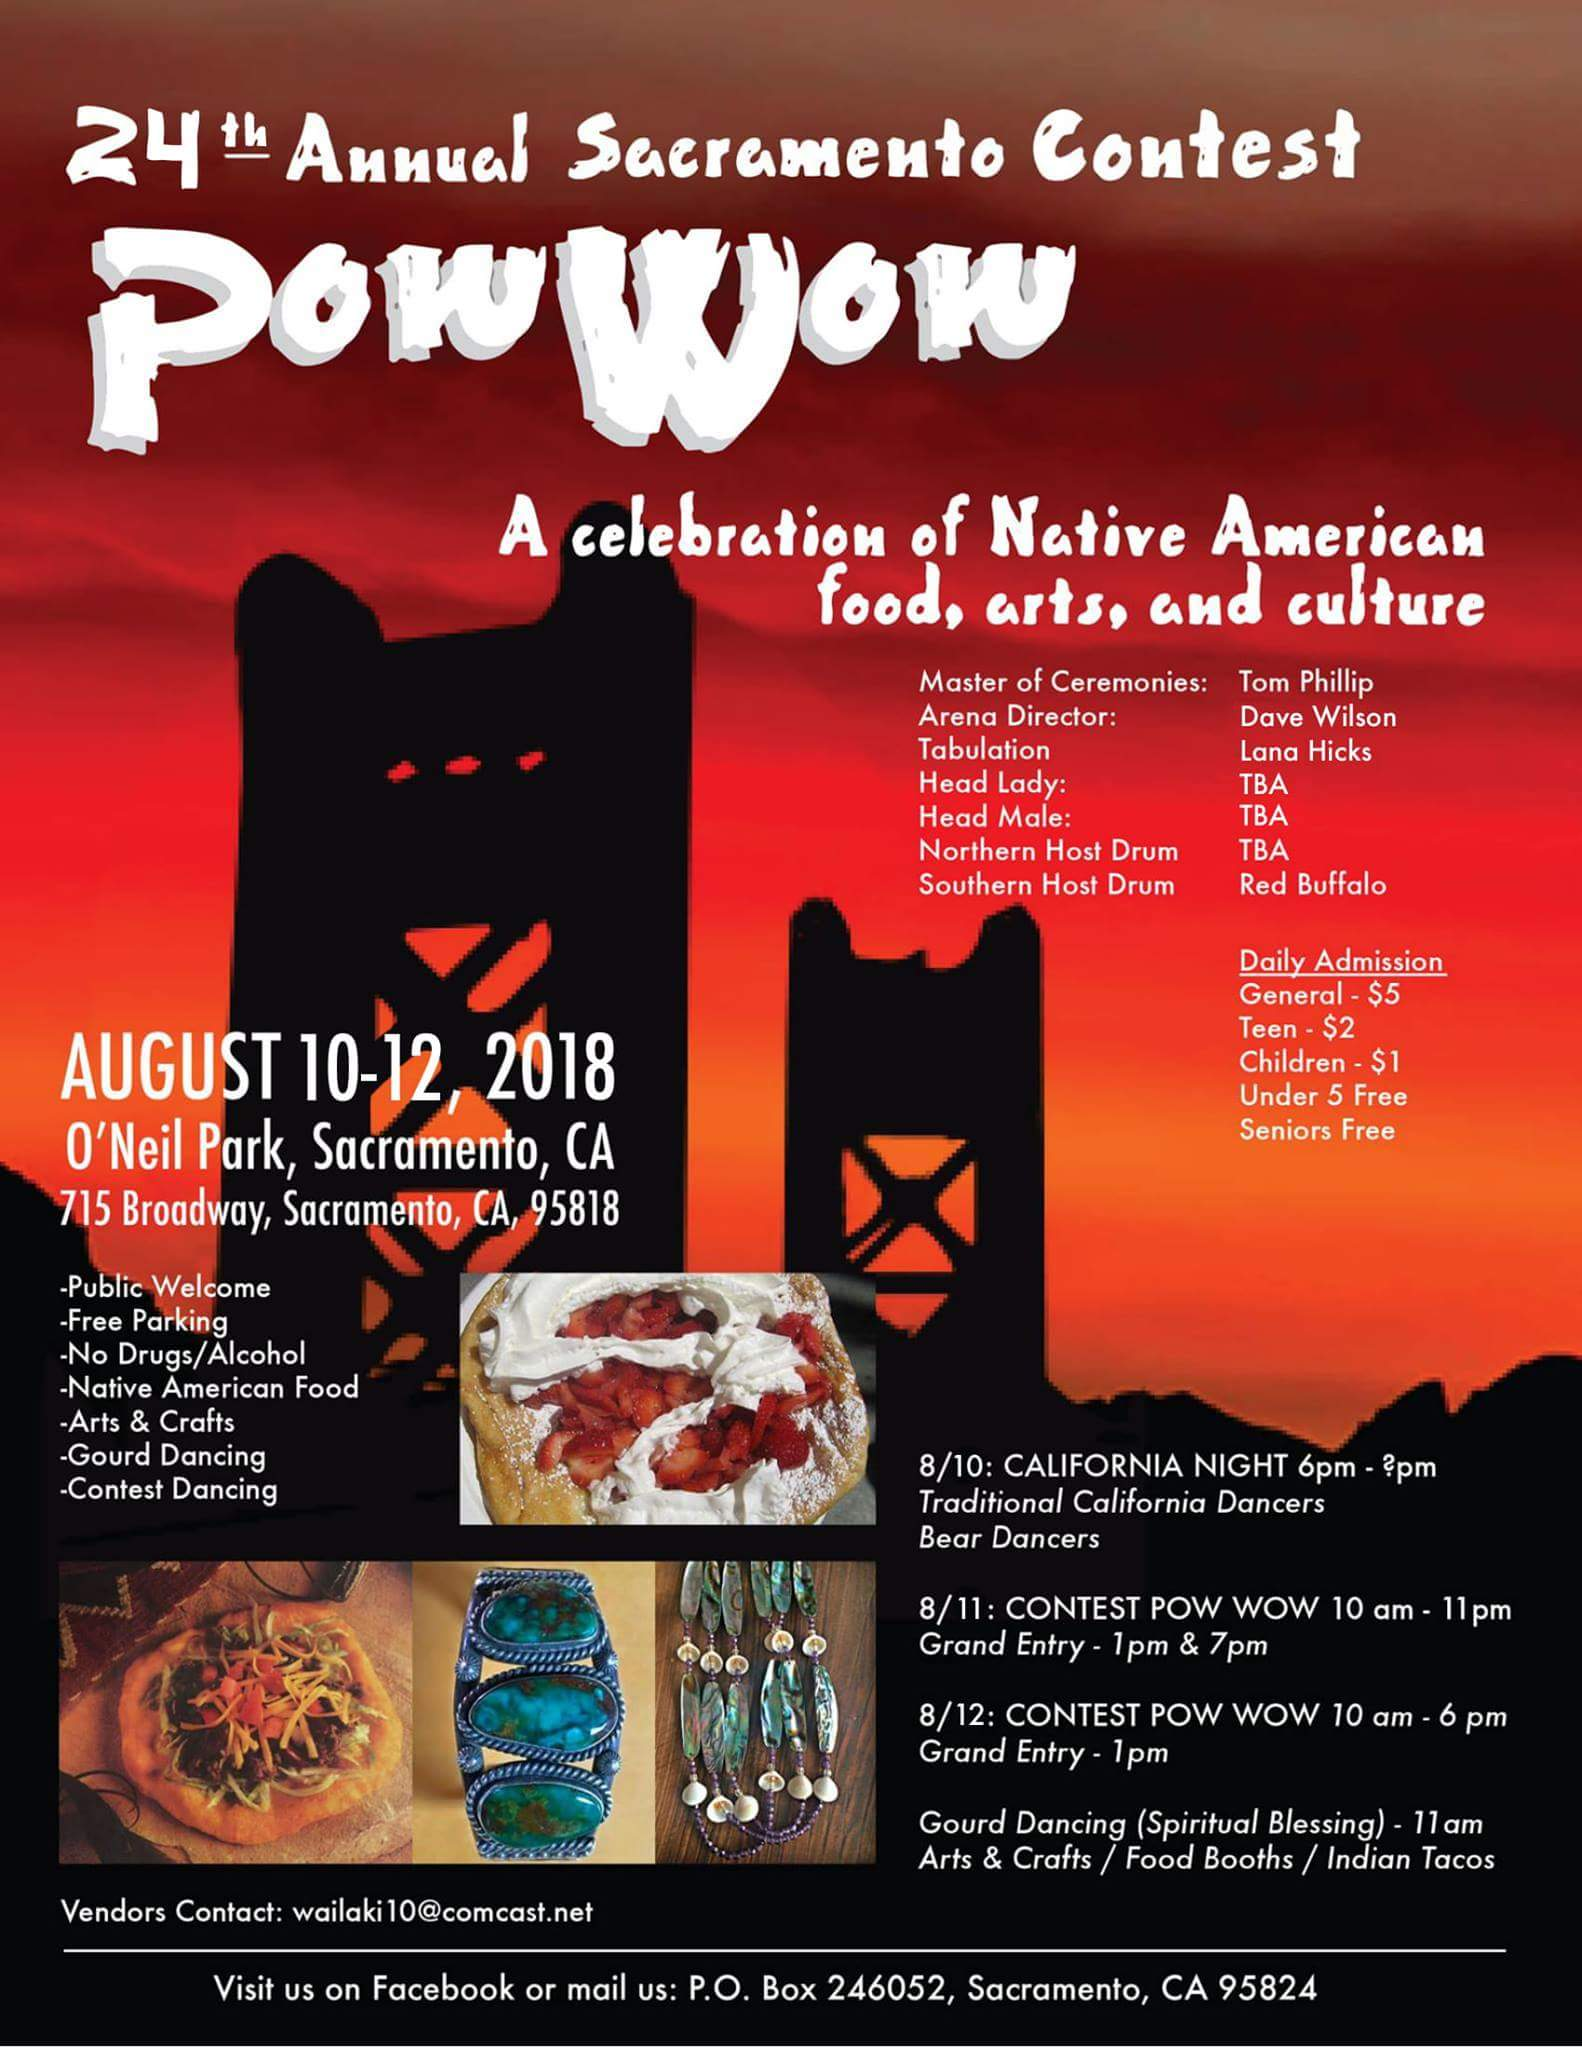 24th Annual Sacramento Contest Pow Wow_Flier.jpg